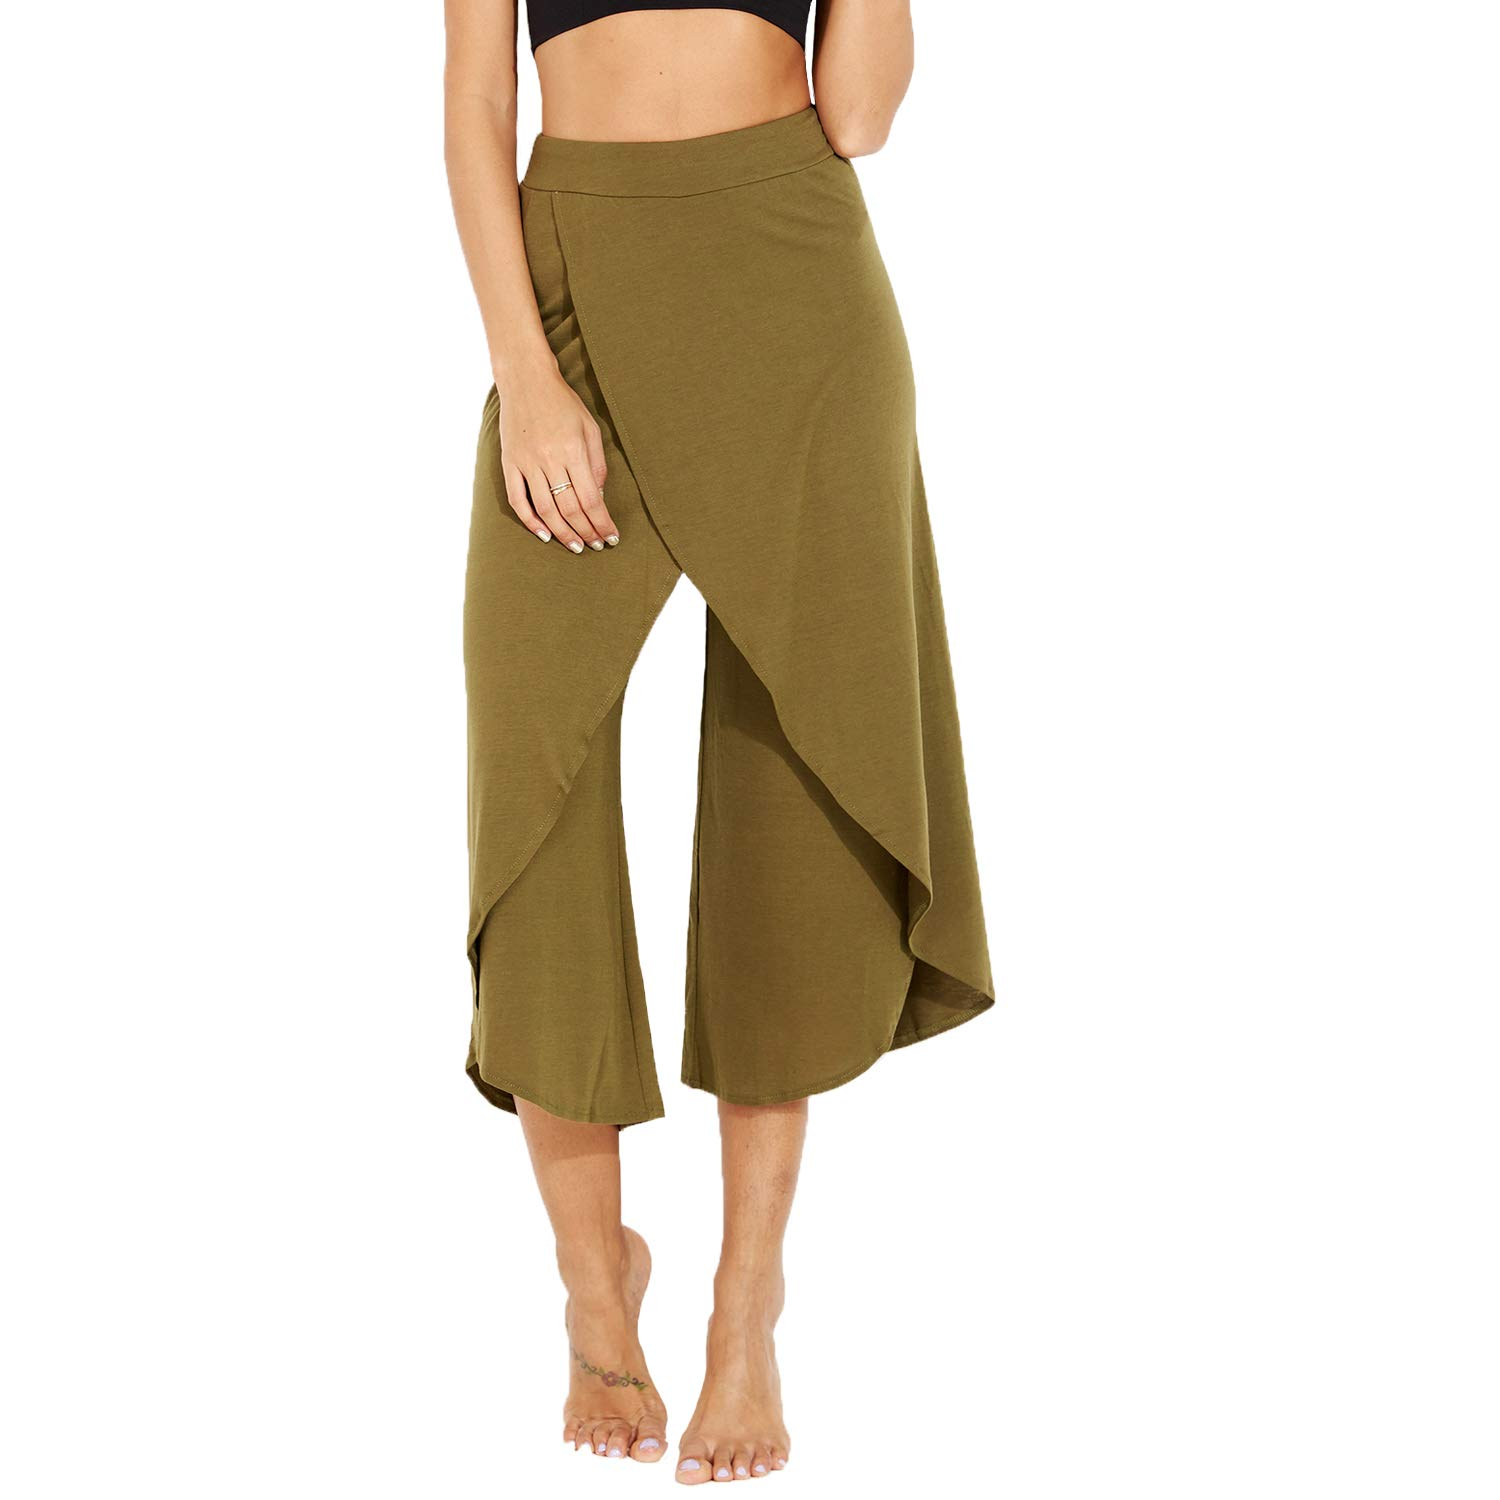 Army Green FITTOO Women's Flowy Split Wide Leg Cropped Pants Comfortable Lightweight Flowing Lounging Palazzos Yoga Sports